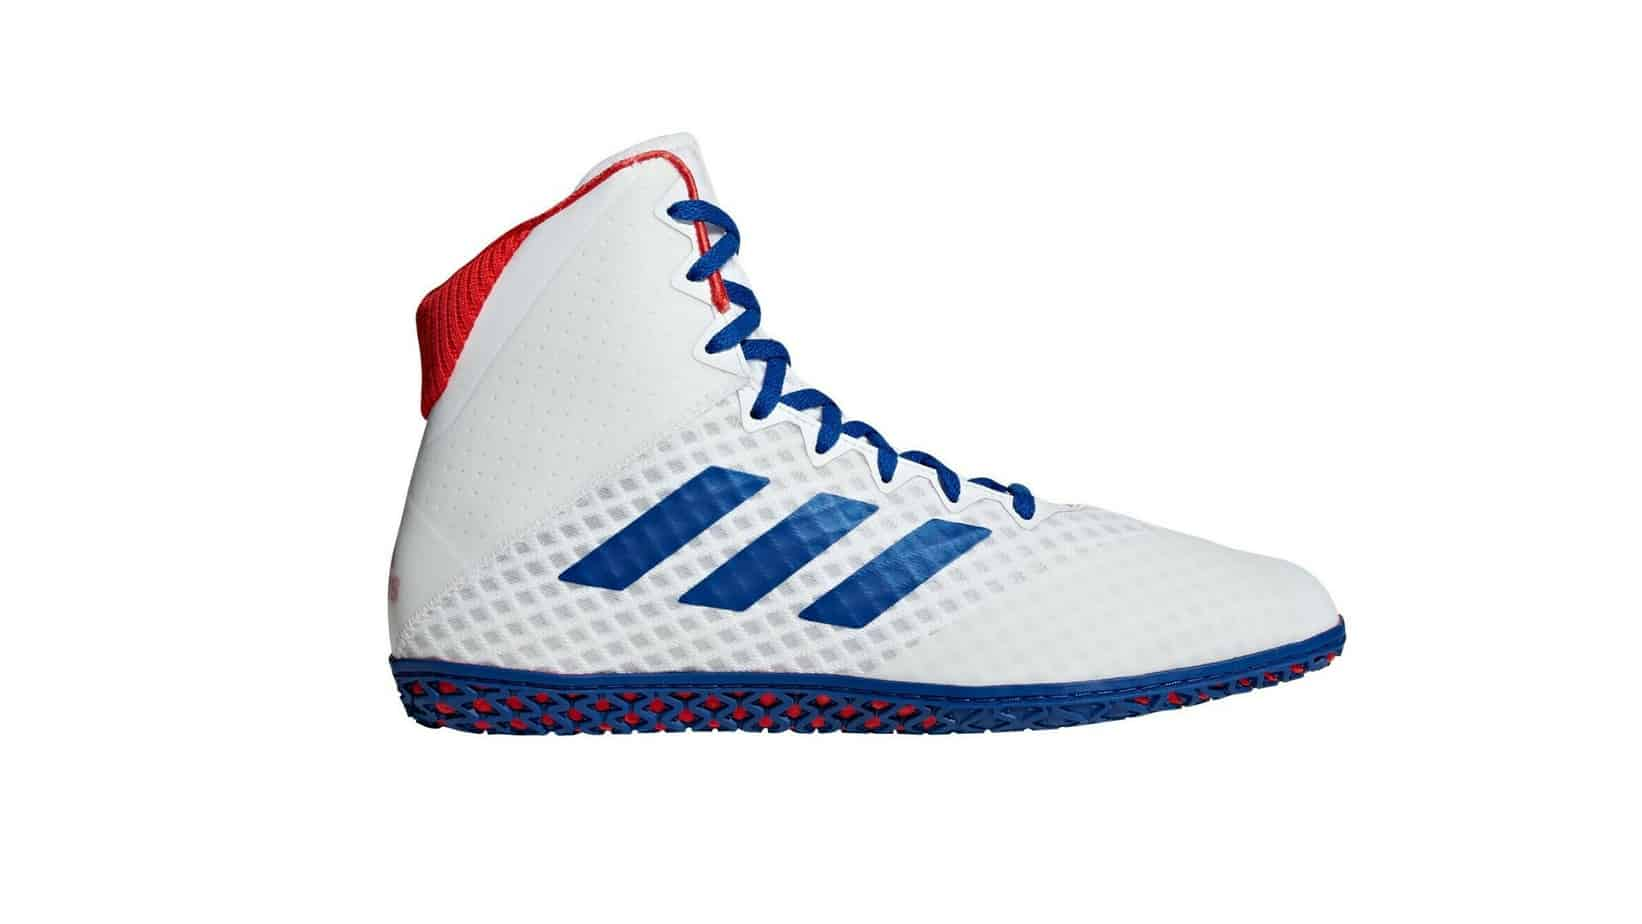 Adidas Wizard MMA Shoes